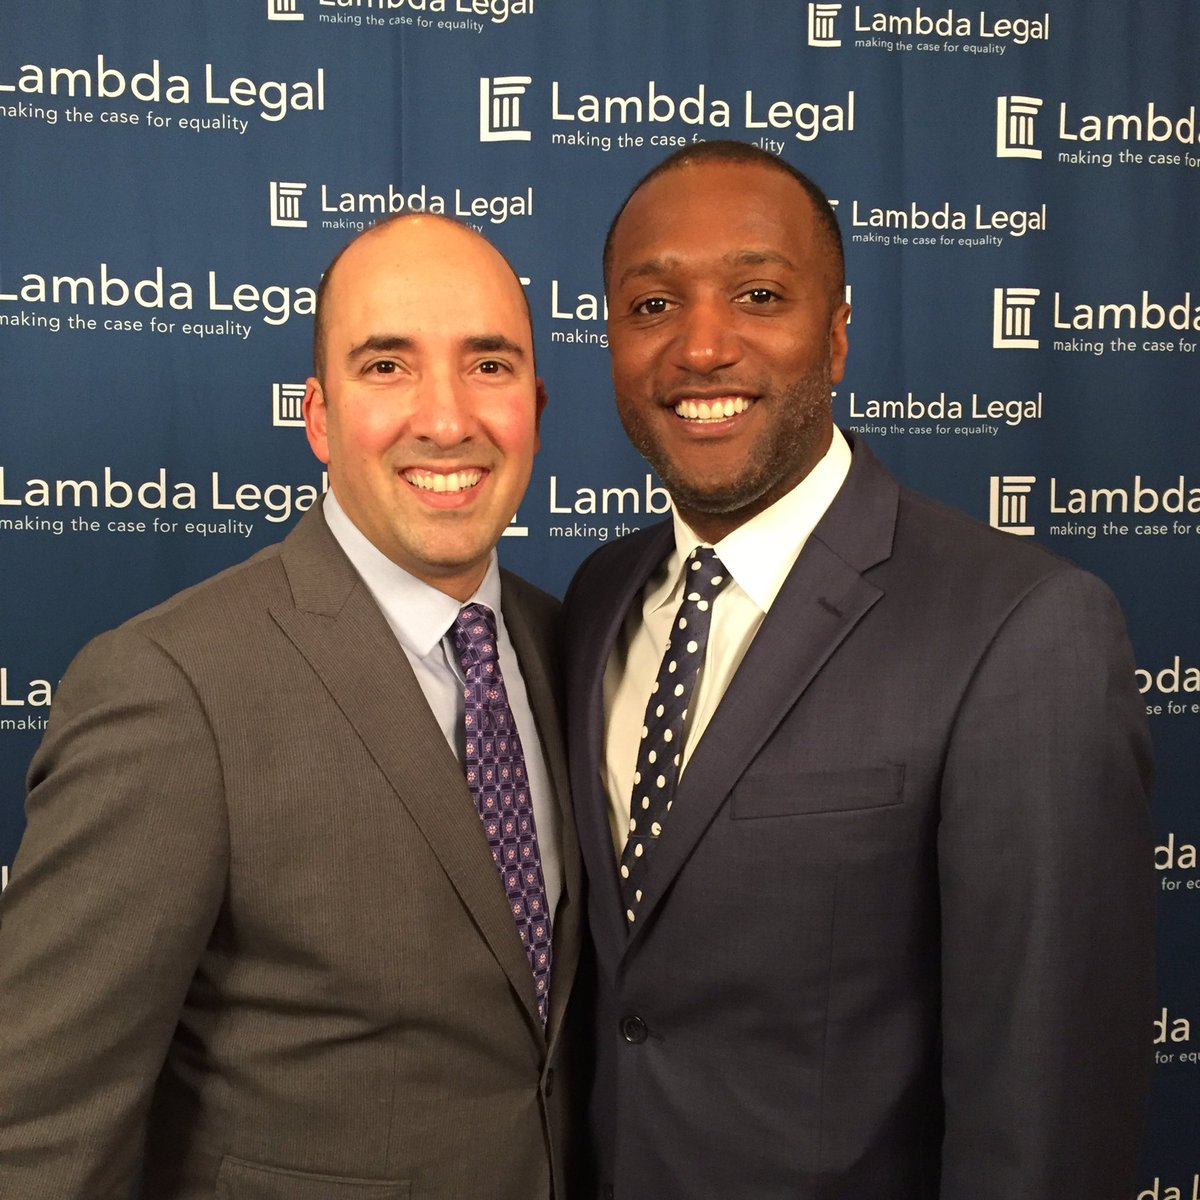 National awards dinner. #equality #LGBT @LambdaLegal https://t.co/p1R35yZix6